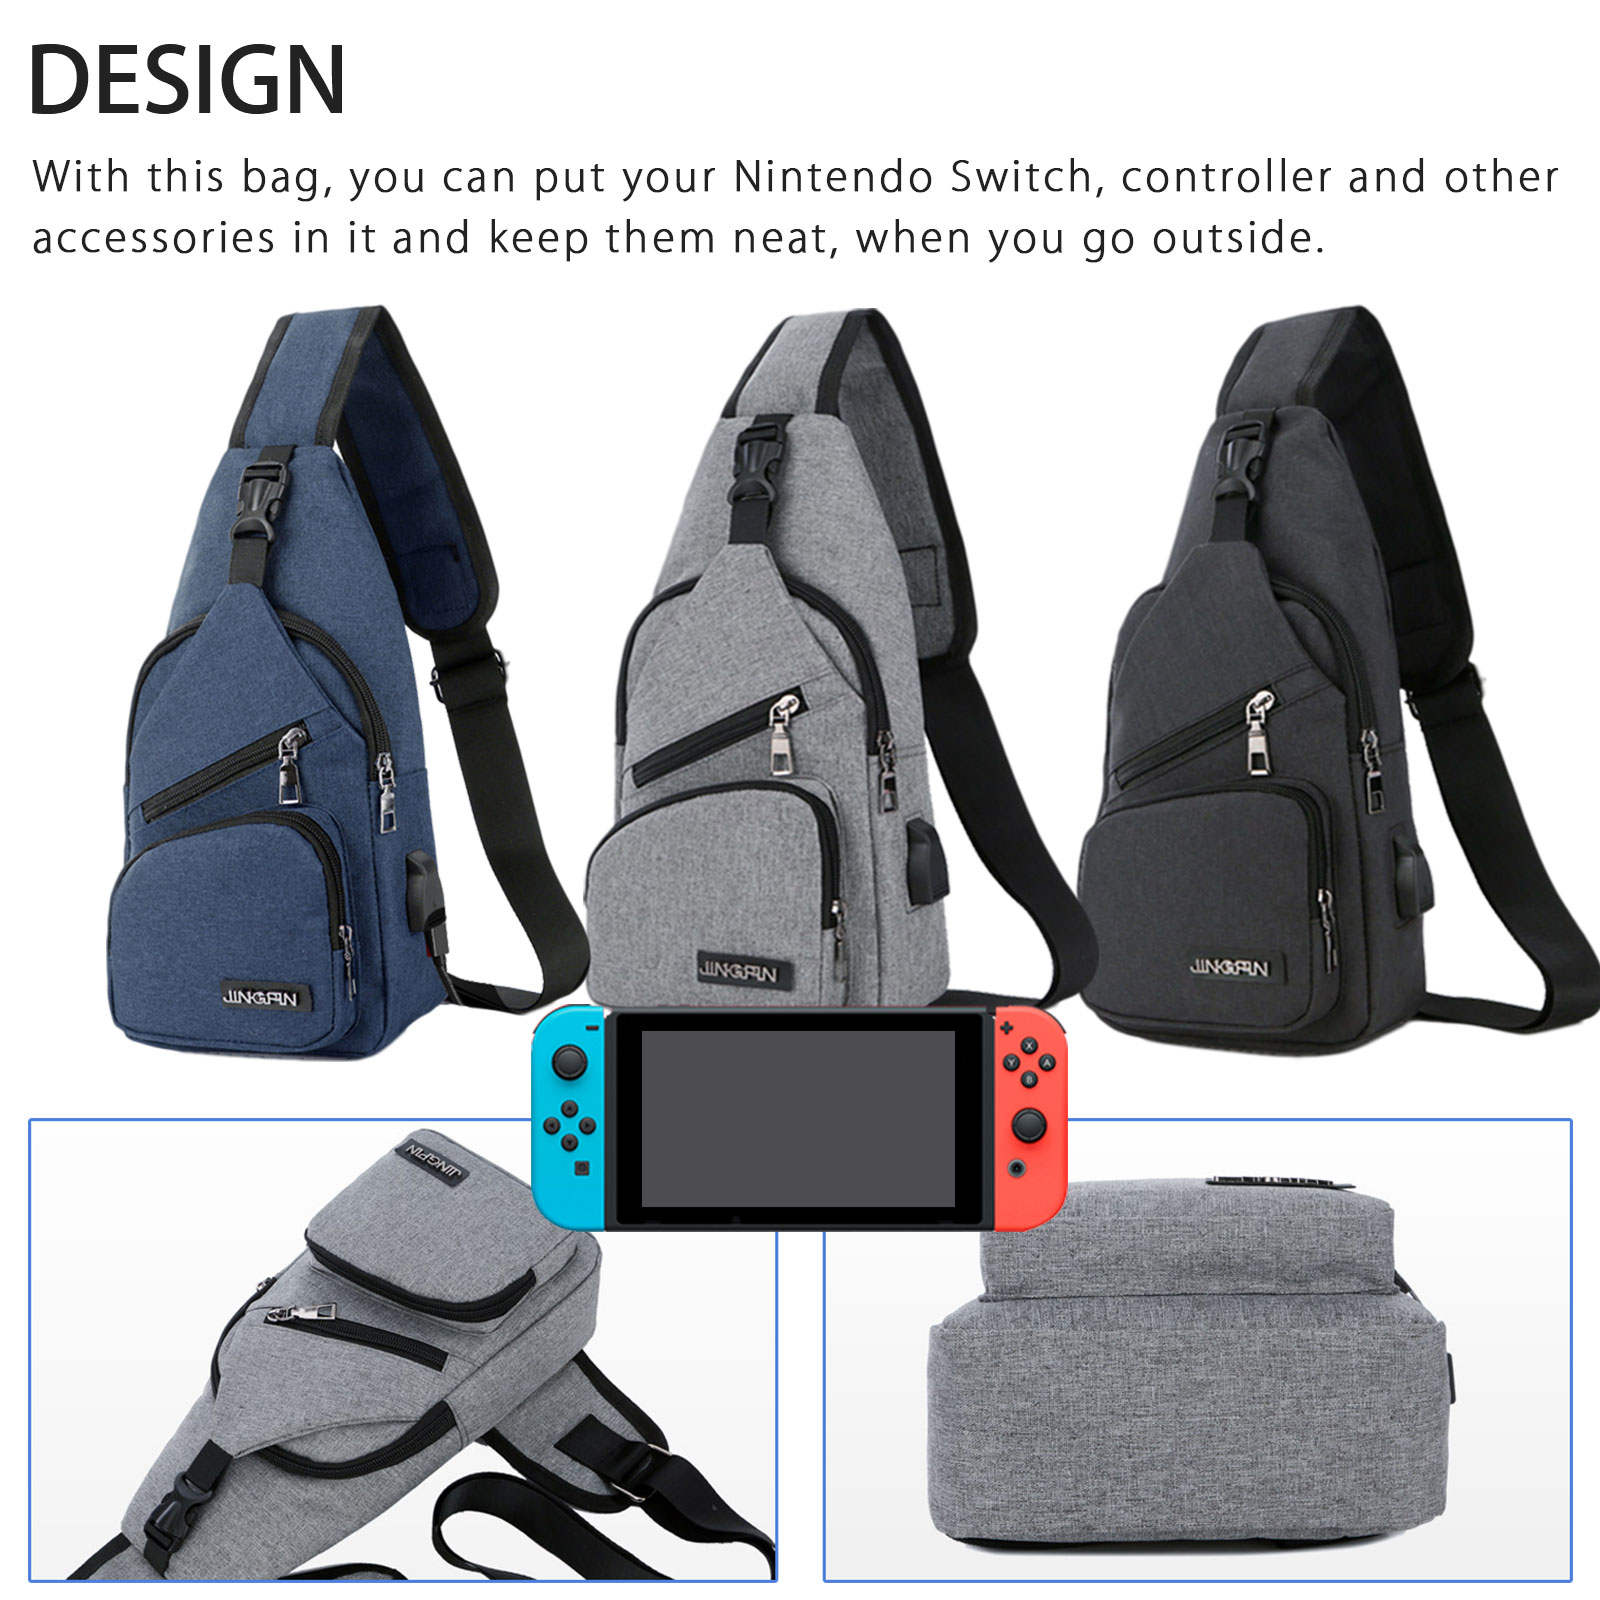 Backpack-Crossbody-Travel-Bag-For-Nintendo-Switch-Console-Joy-Cons-Accessories thumbnail 3